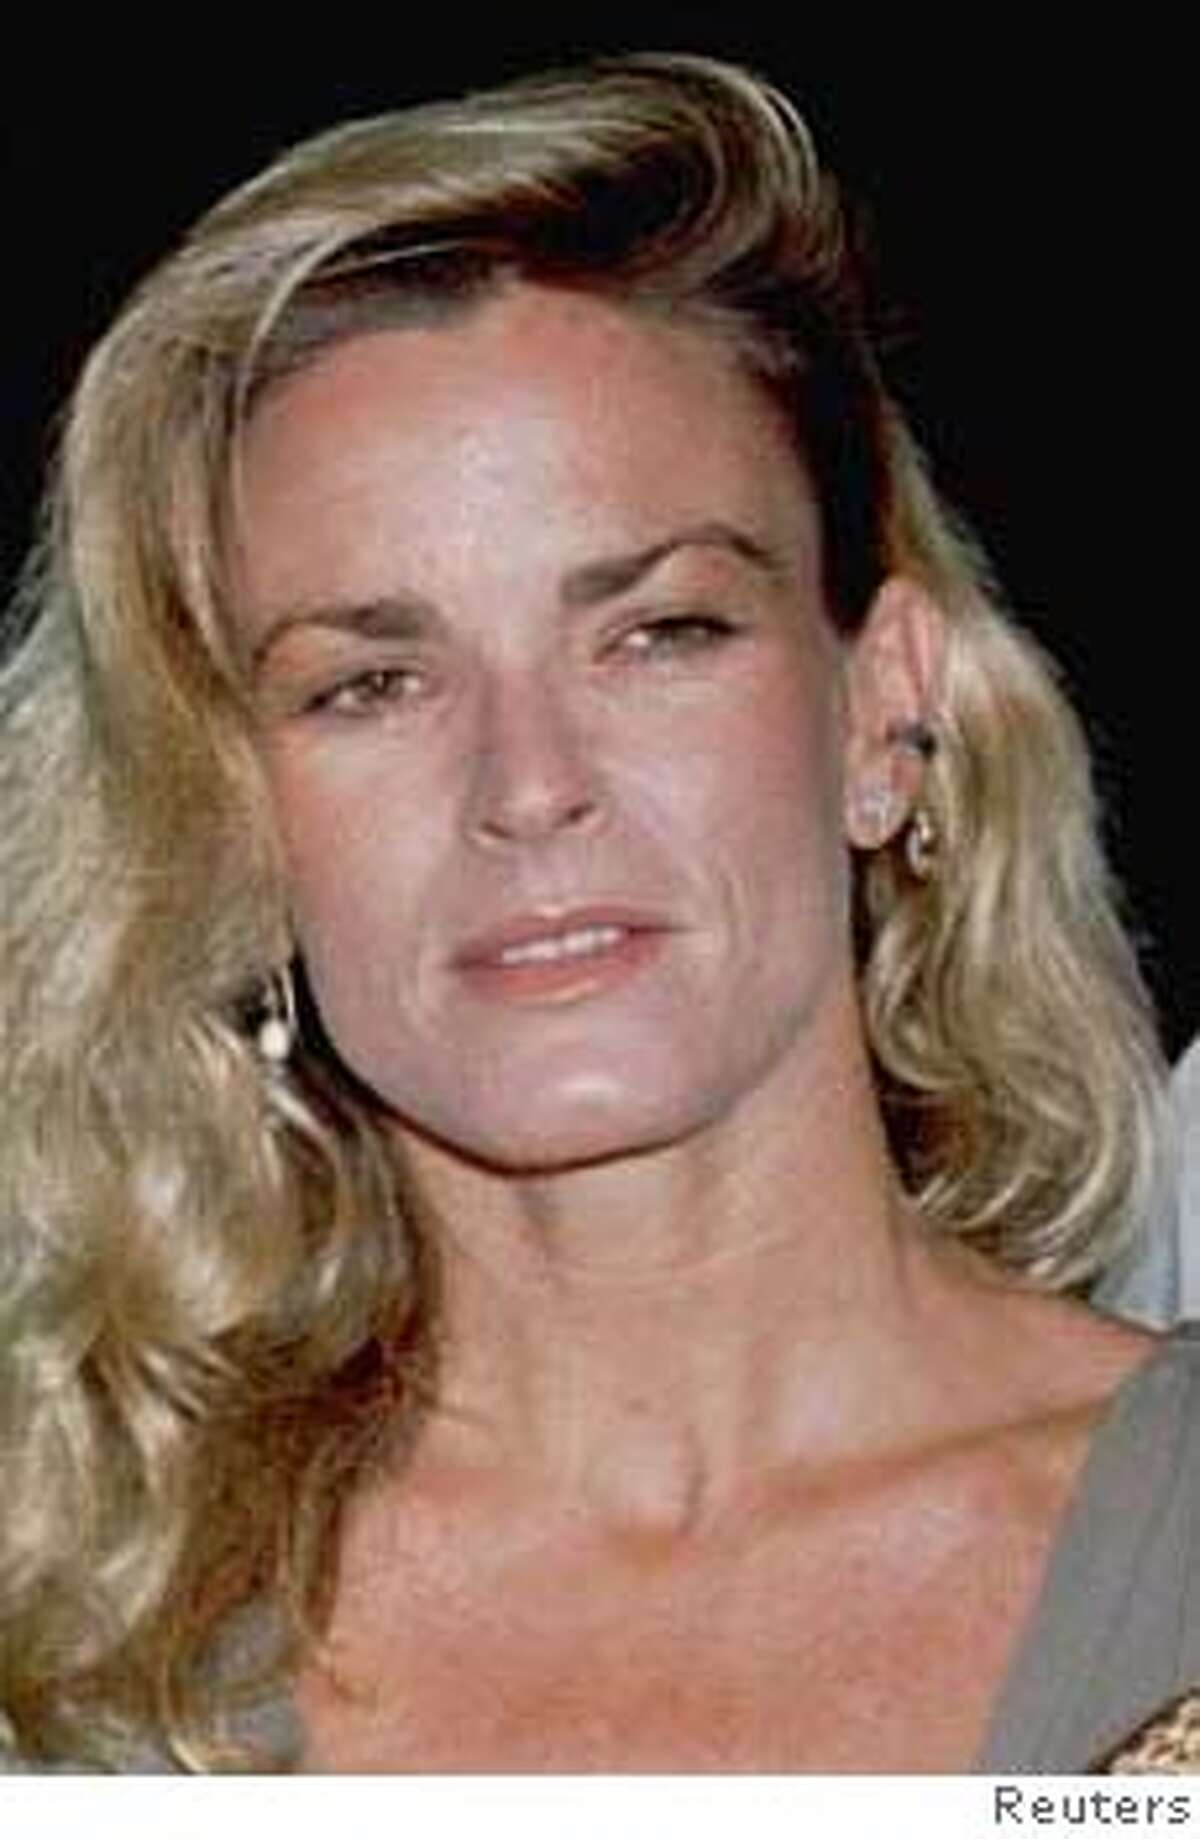 """LOA02:SIMPSON:LOS ANGELES,15JUN94- FILE PHOTO MAR94- Nicole Simpson, ex-wife of O.J. Simpson, is shown at the March 16, 1994, premiere of O. J. Simpson's new film """"Naked Gun 33 1/3:The Final Insult,"""" in Los Angeles. Nicole Simpson and a male companion, Ronald Goldman, were found murdered June 12 in Los Angeles. fsp/str-Fred Prouser REUTER ALSO RAN: 11/22/96 CAT"""